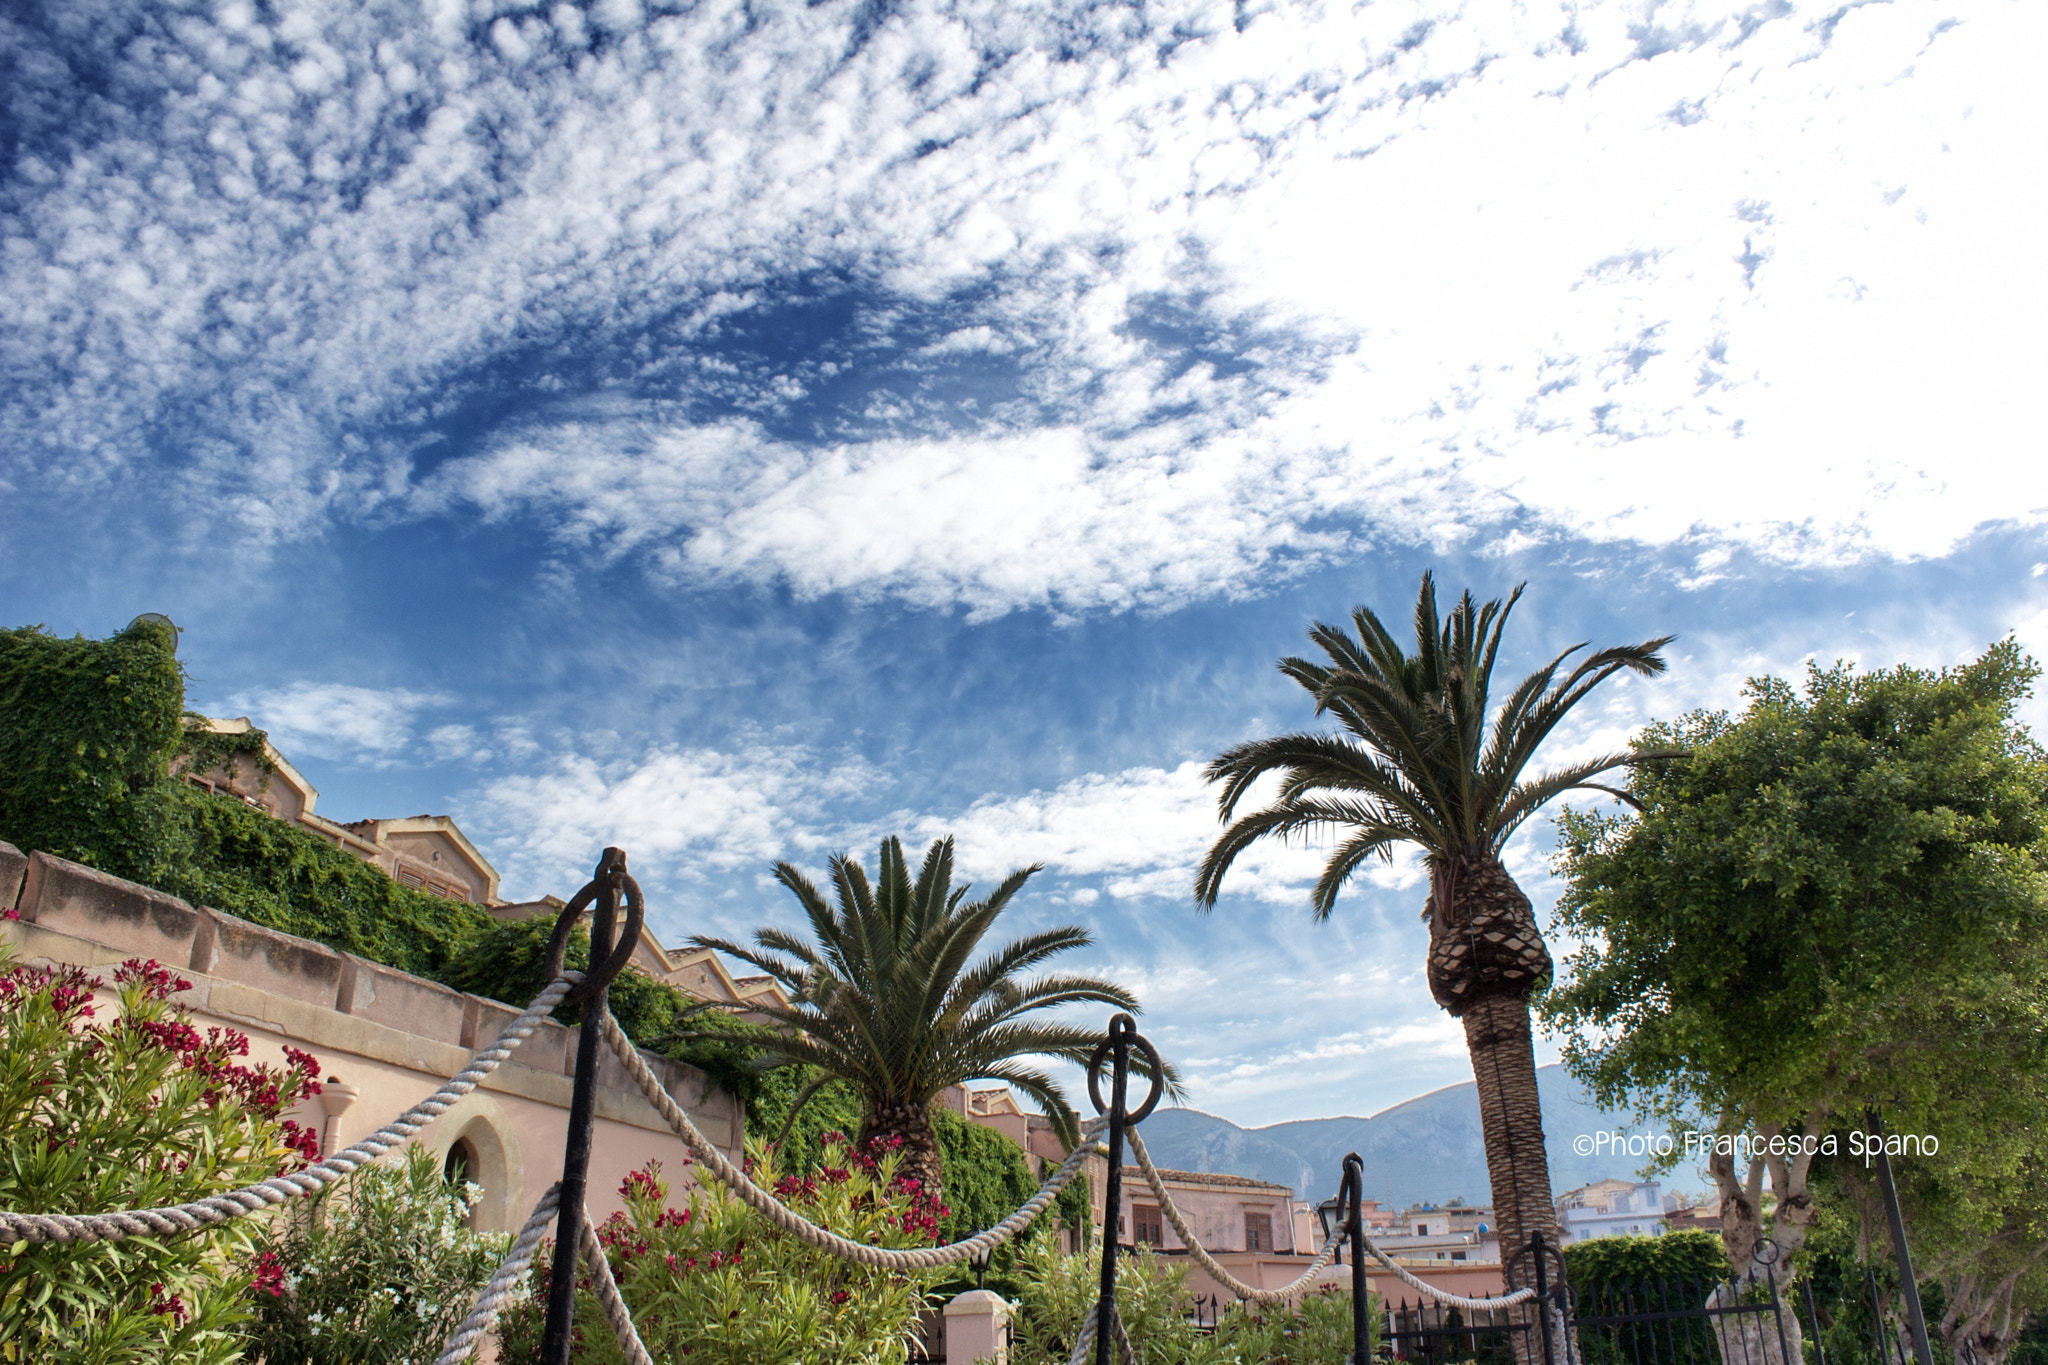 Photograph Clouds by Chiccastella Francesca Spano on 500px